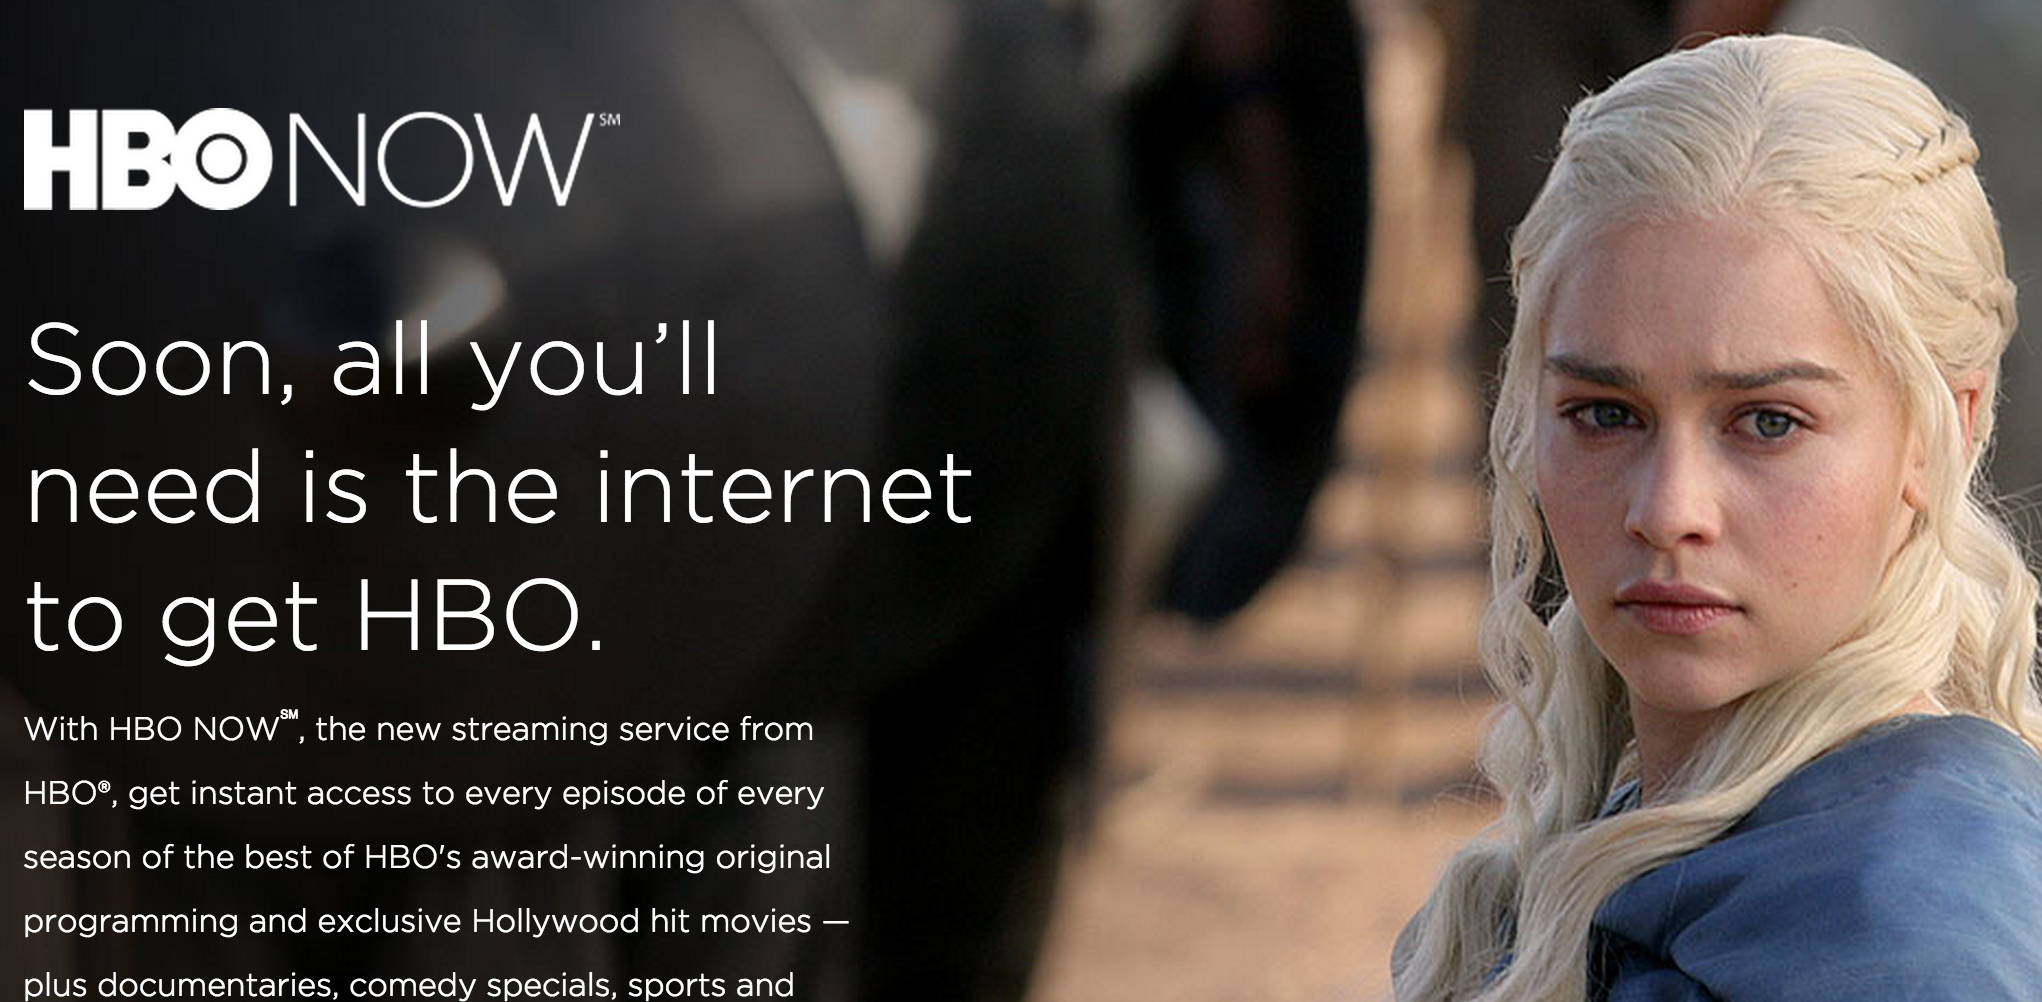 Cablevision Will Also Offer HBO Now Streaming Service